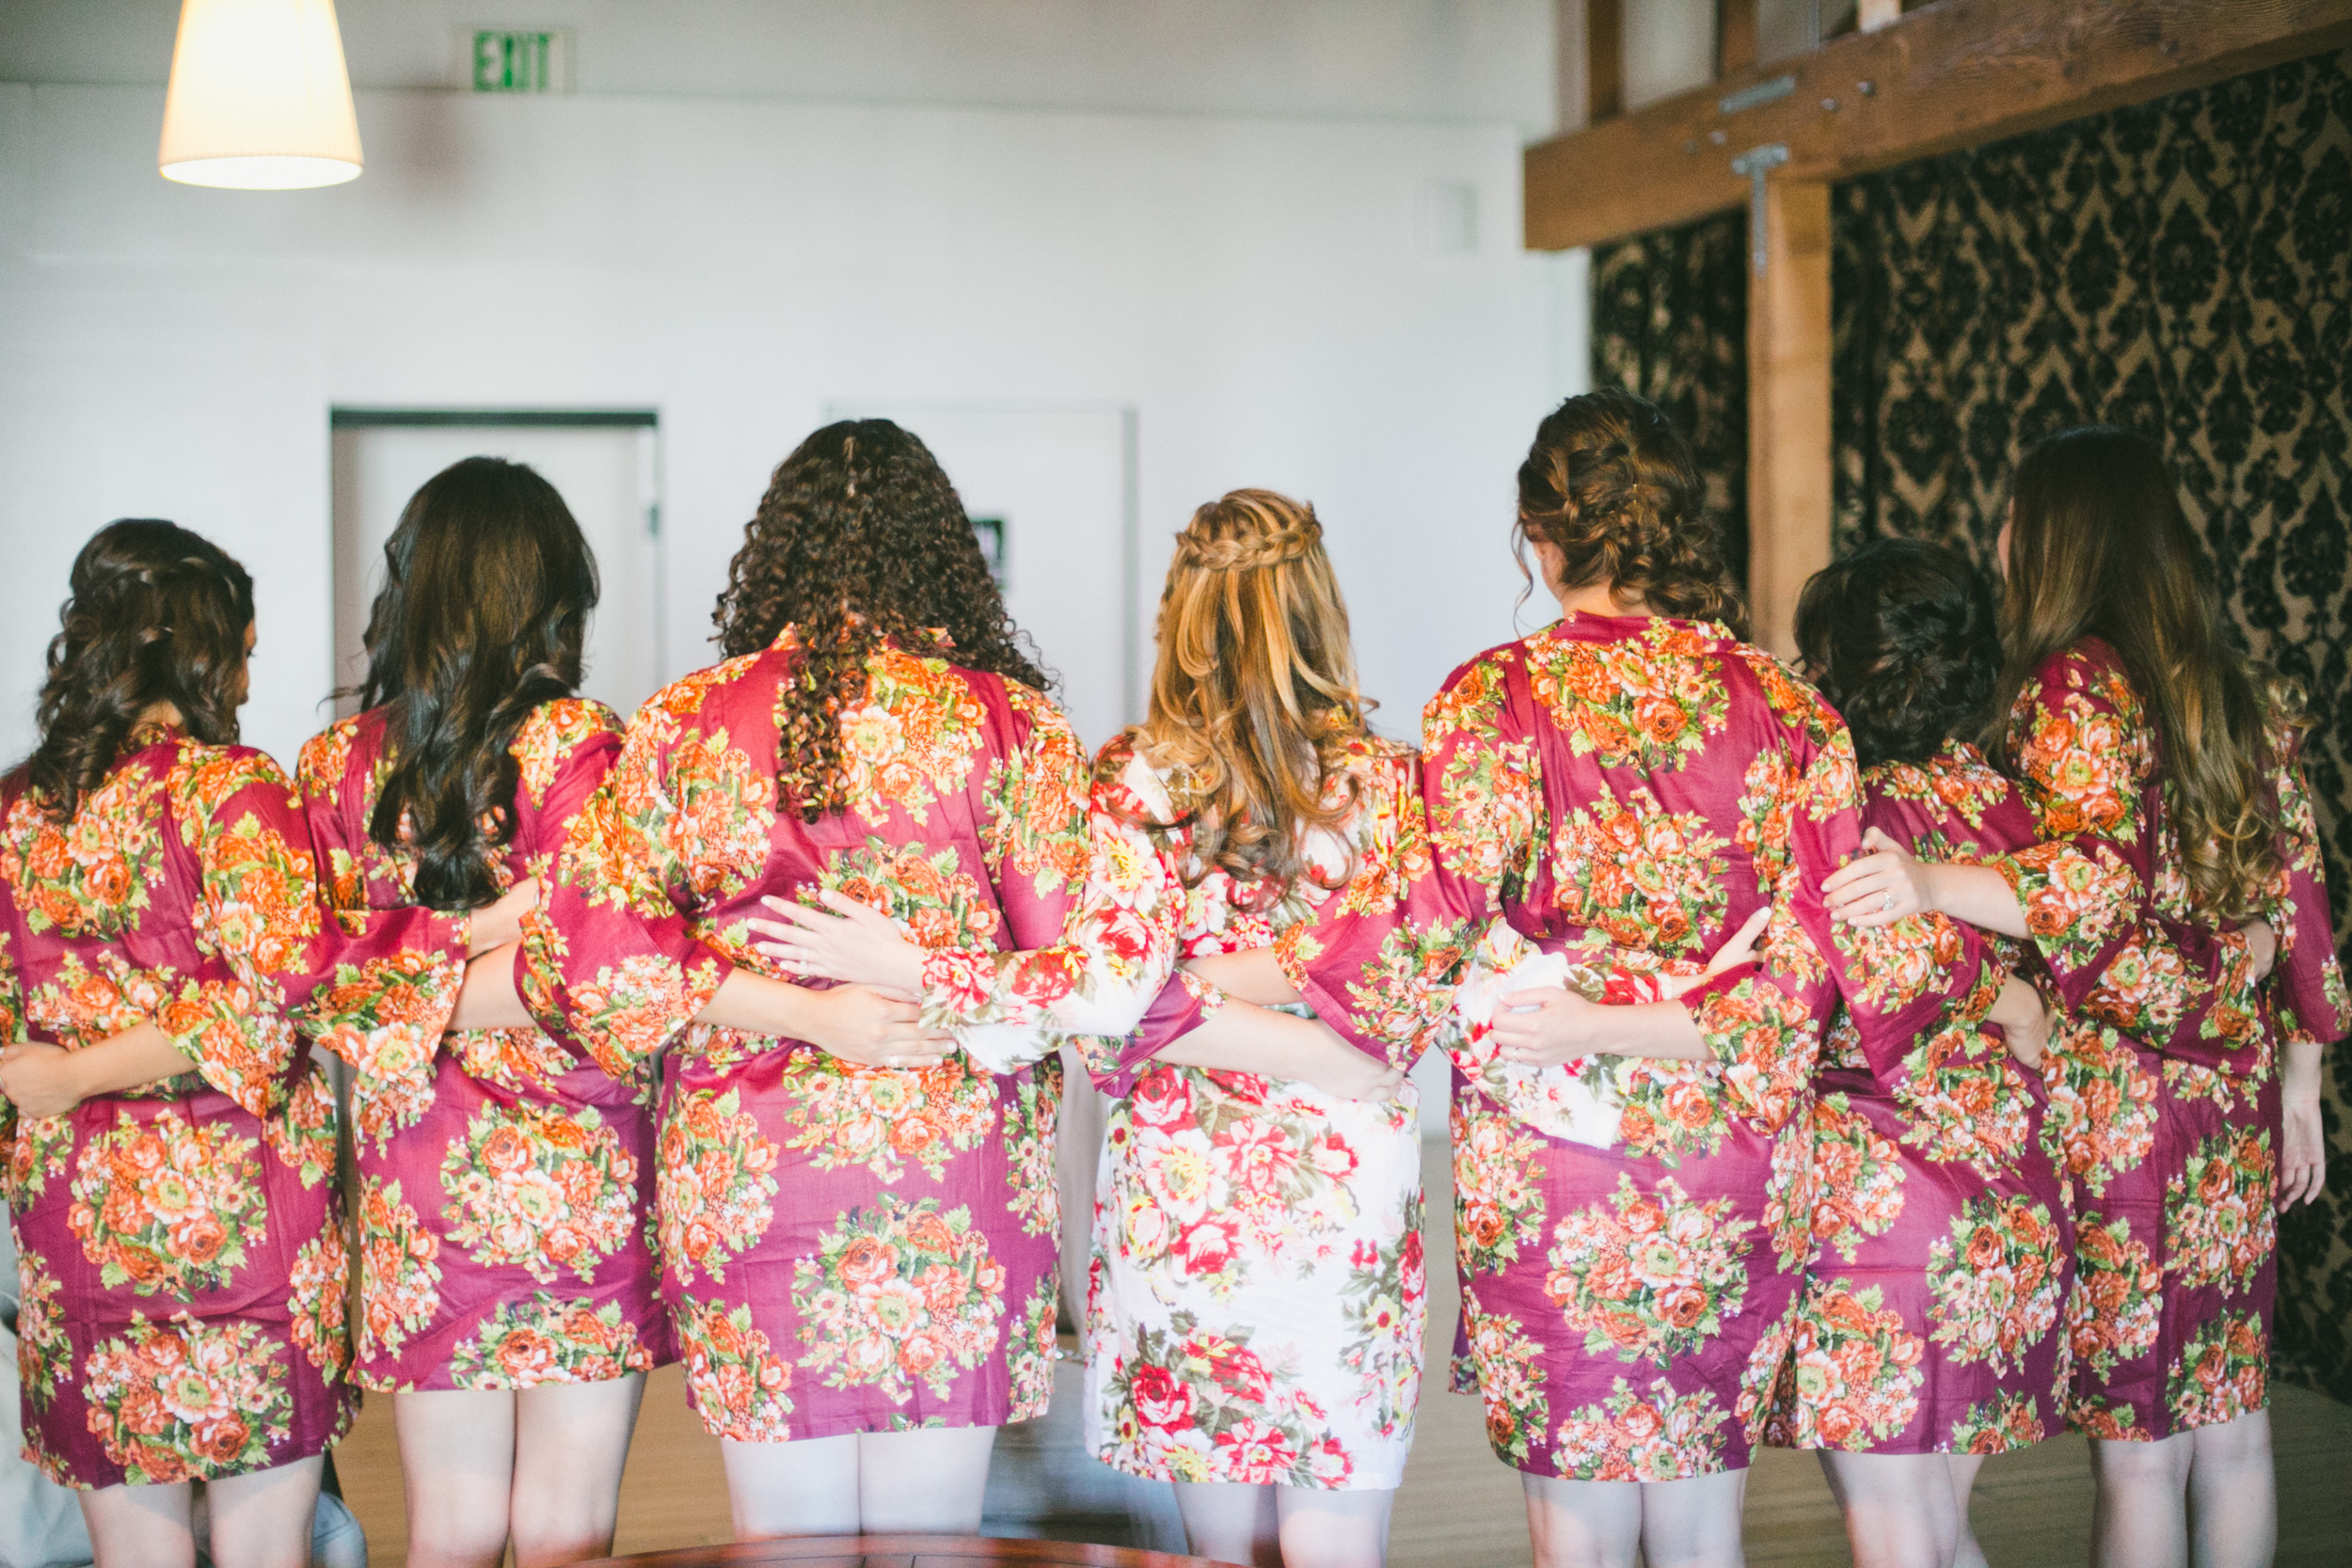 004 bridesmaids + robes back.JPG